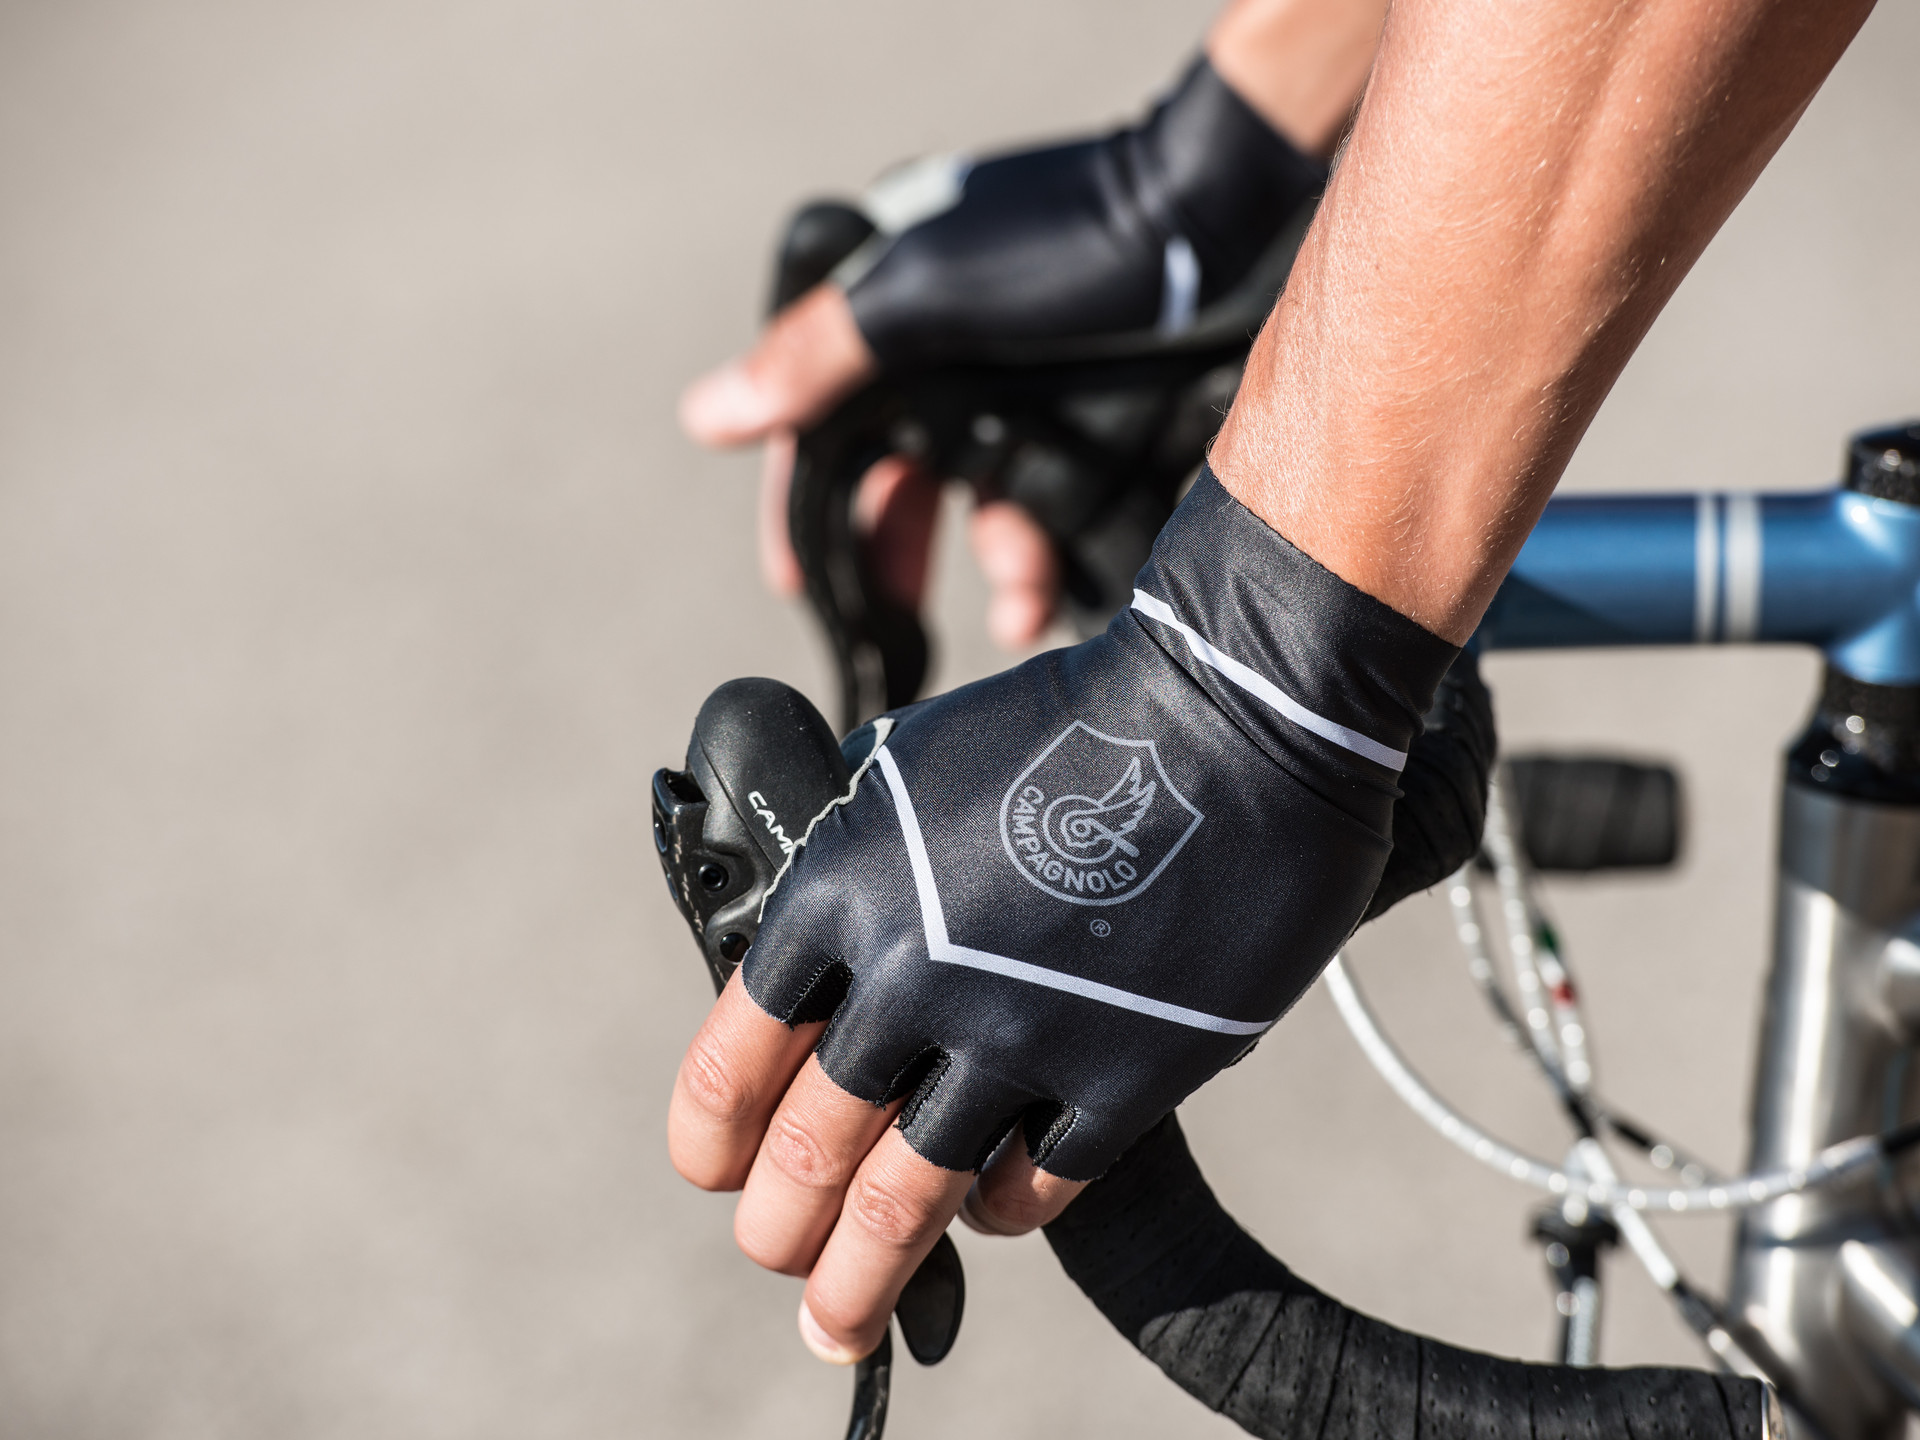 C Tech Gloves Campagnolo Cycling Gloves Campagnolo